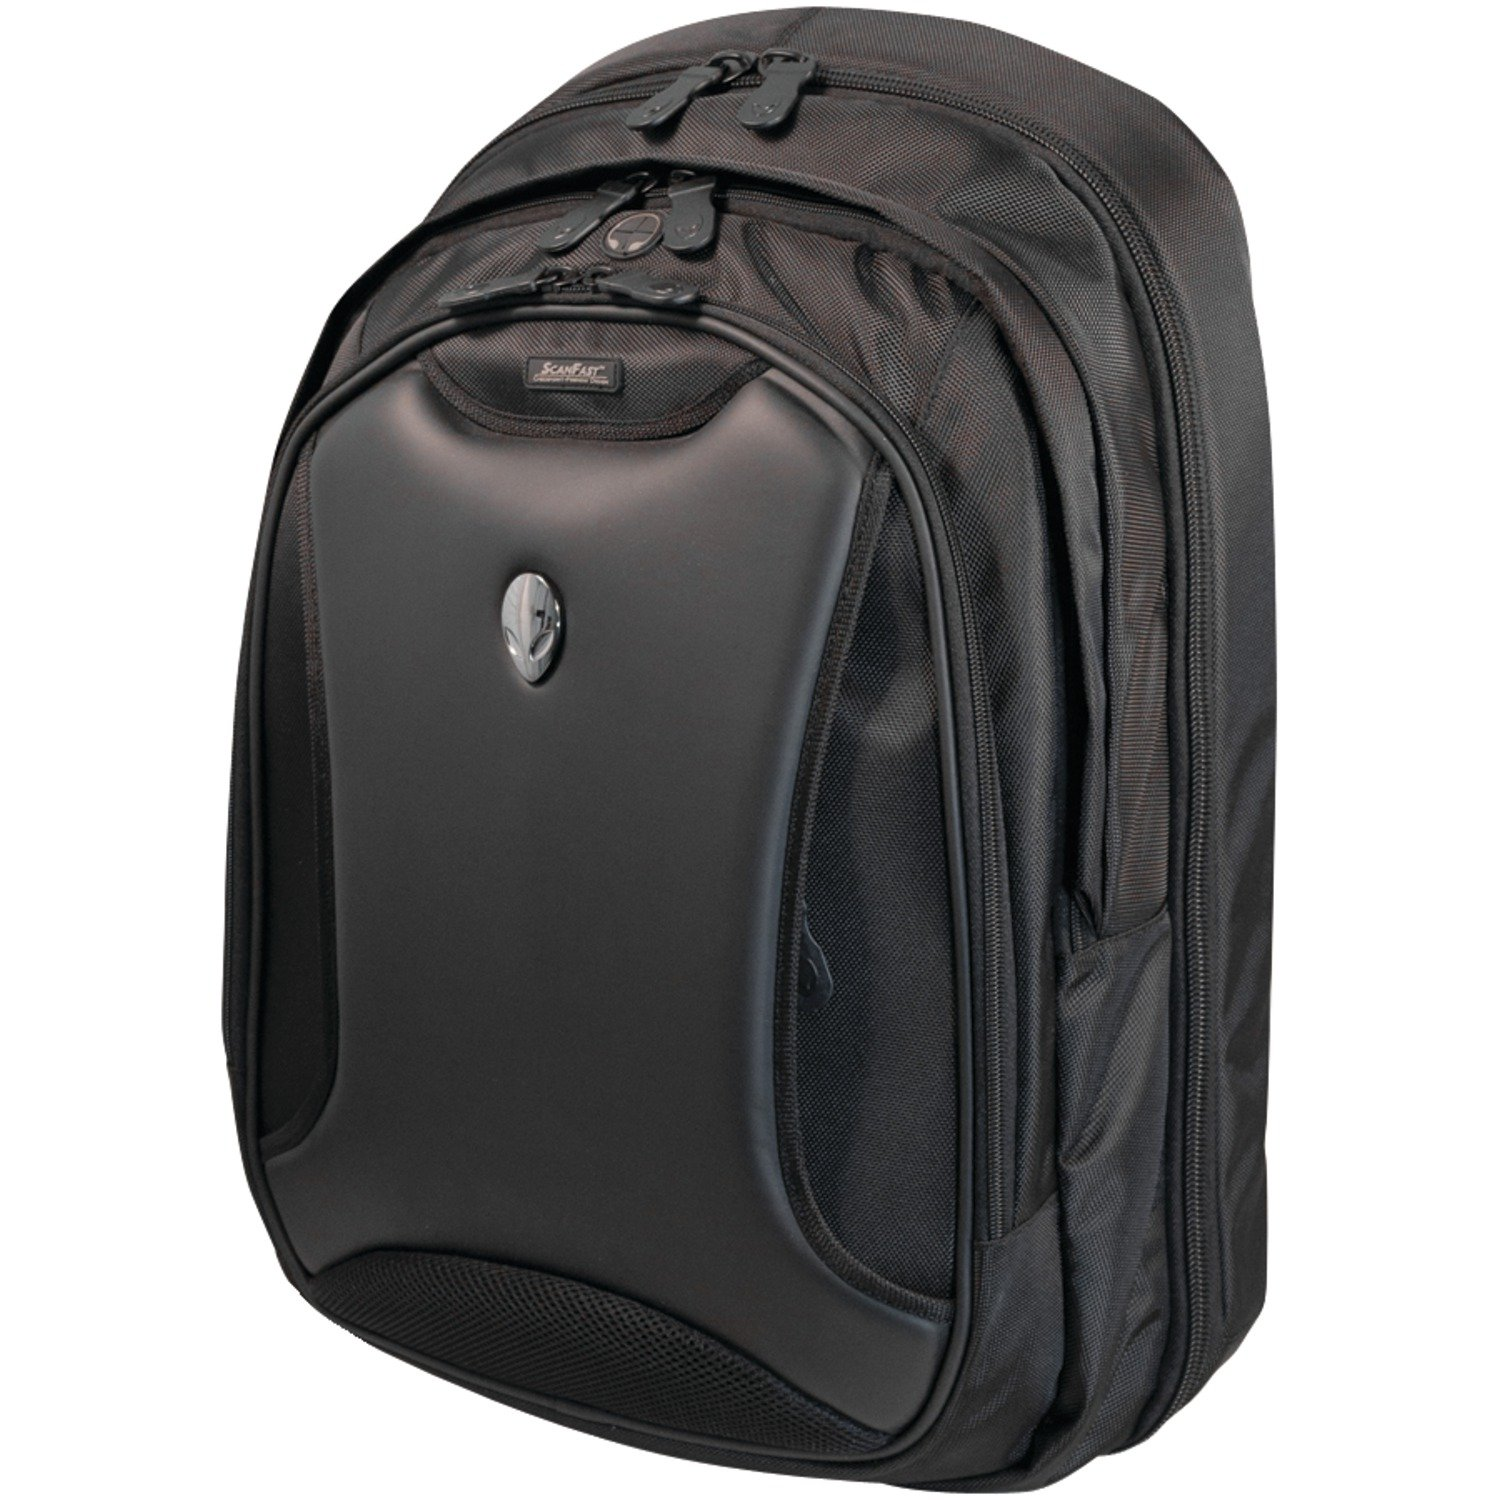 Alienware Awbp18 Orion Notebook Backpack With Scanfast by Mobile Edge